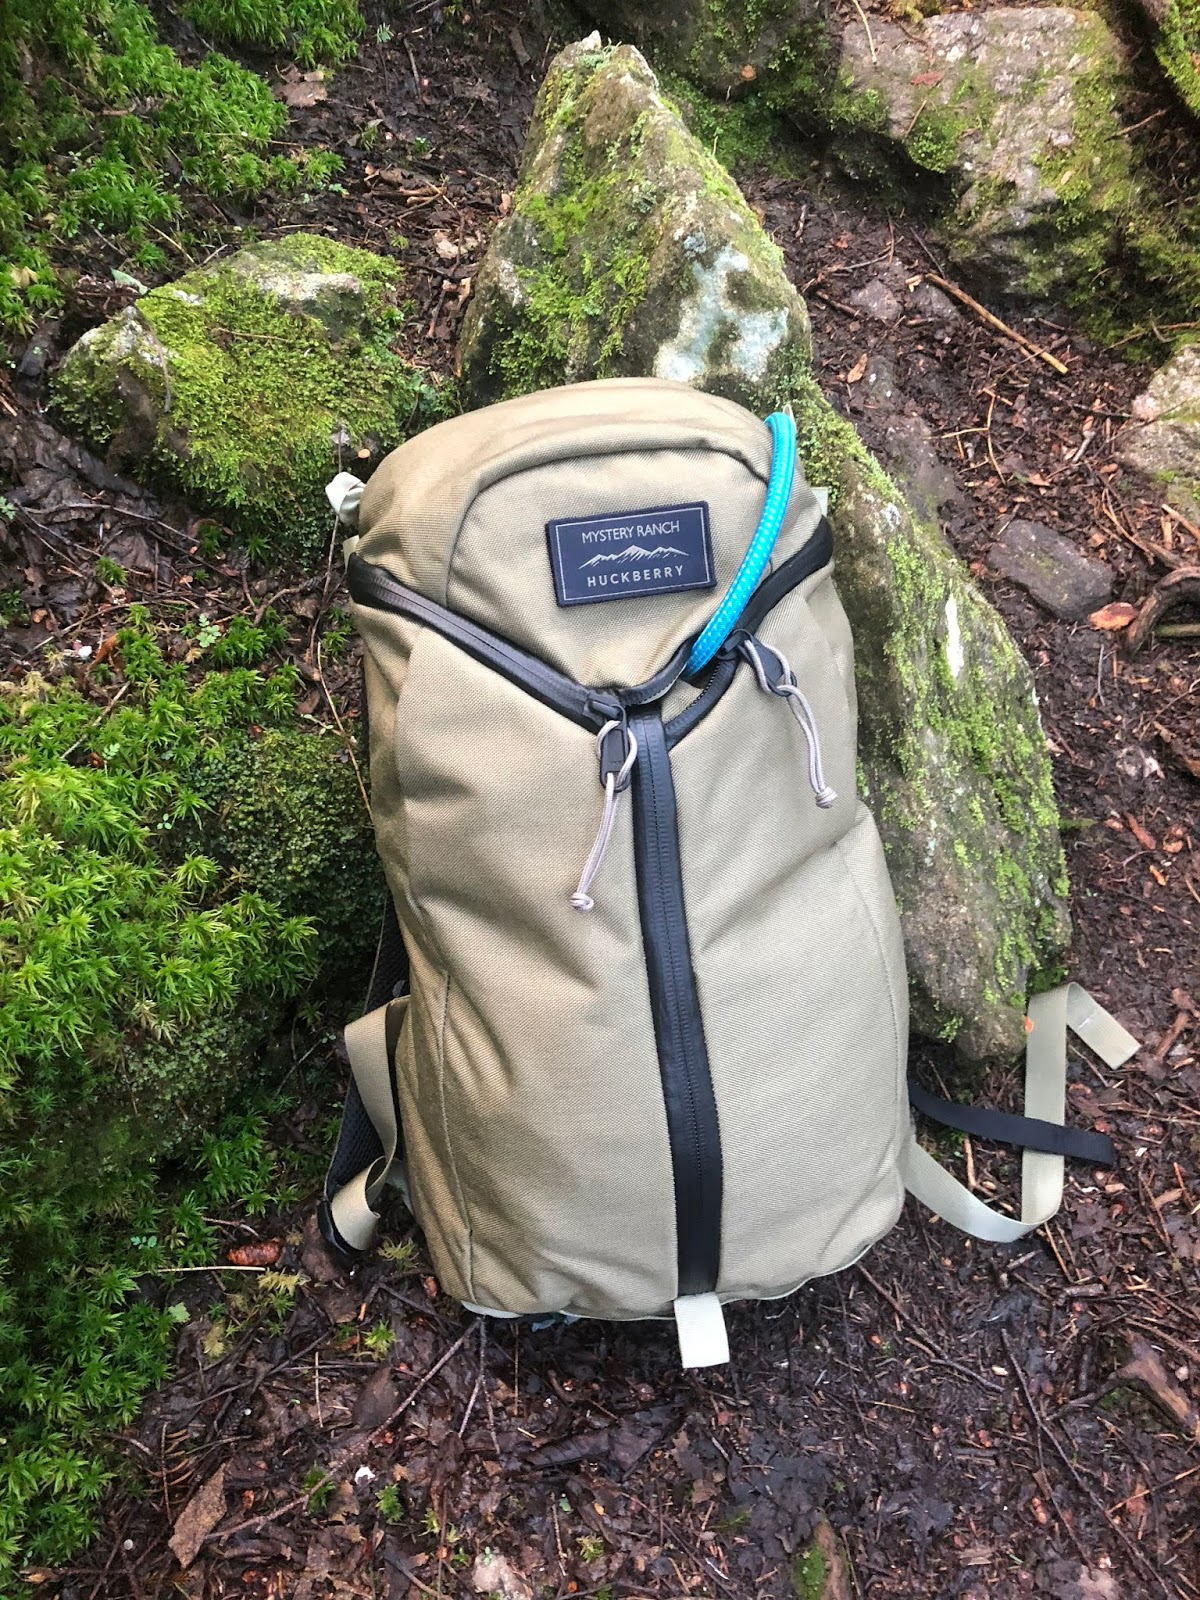 eaad849ae The Huckberry version of the Urban Assault 21 L differs from the regular Urban  Assault in being made of forest service Hot Shots grade super rugged  Cordura ...